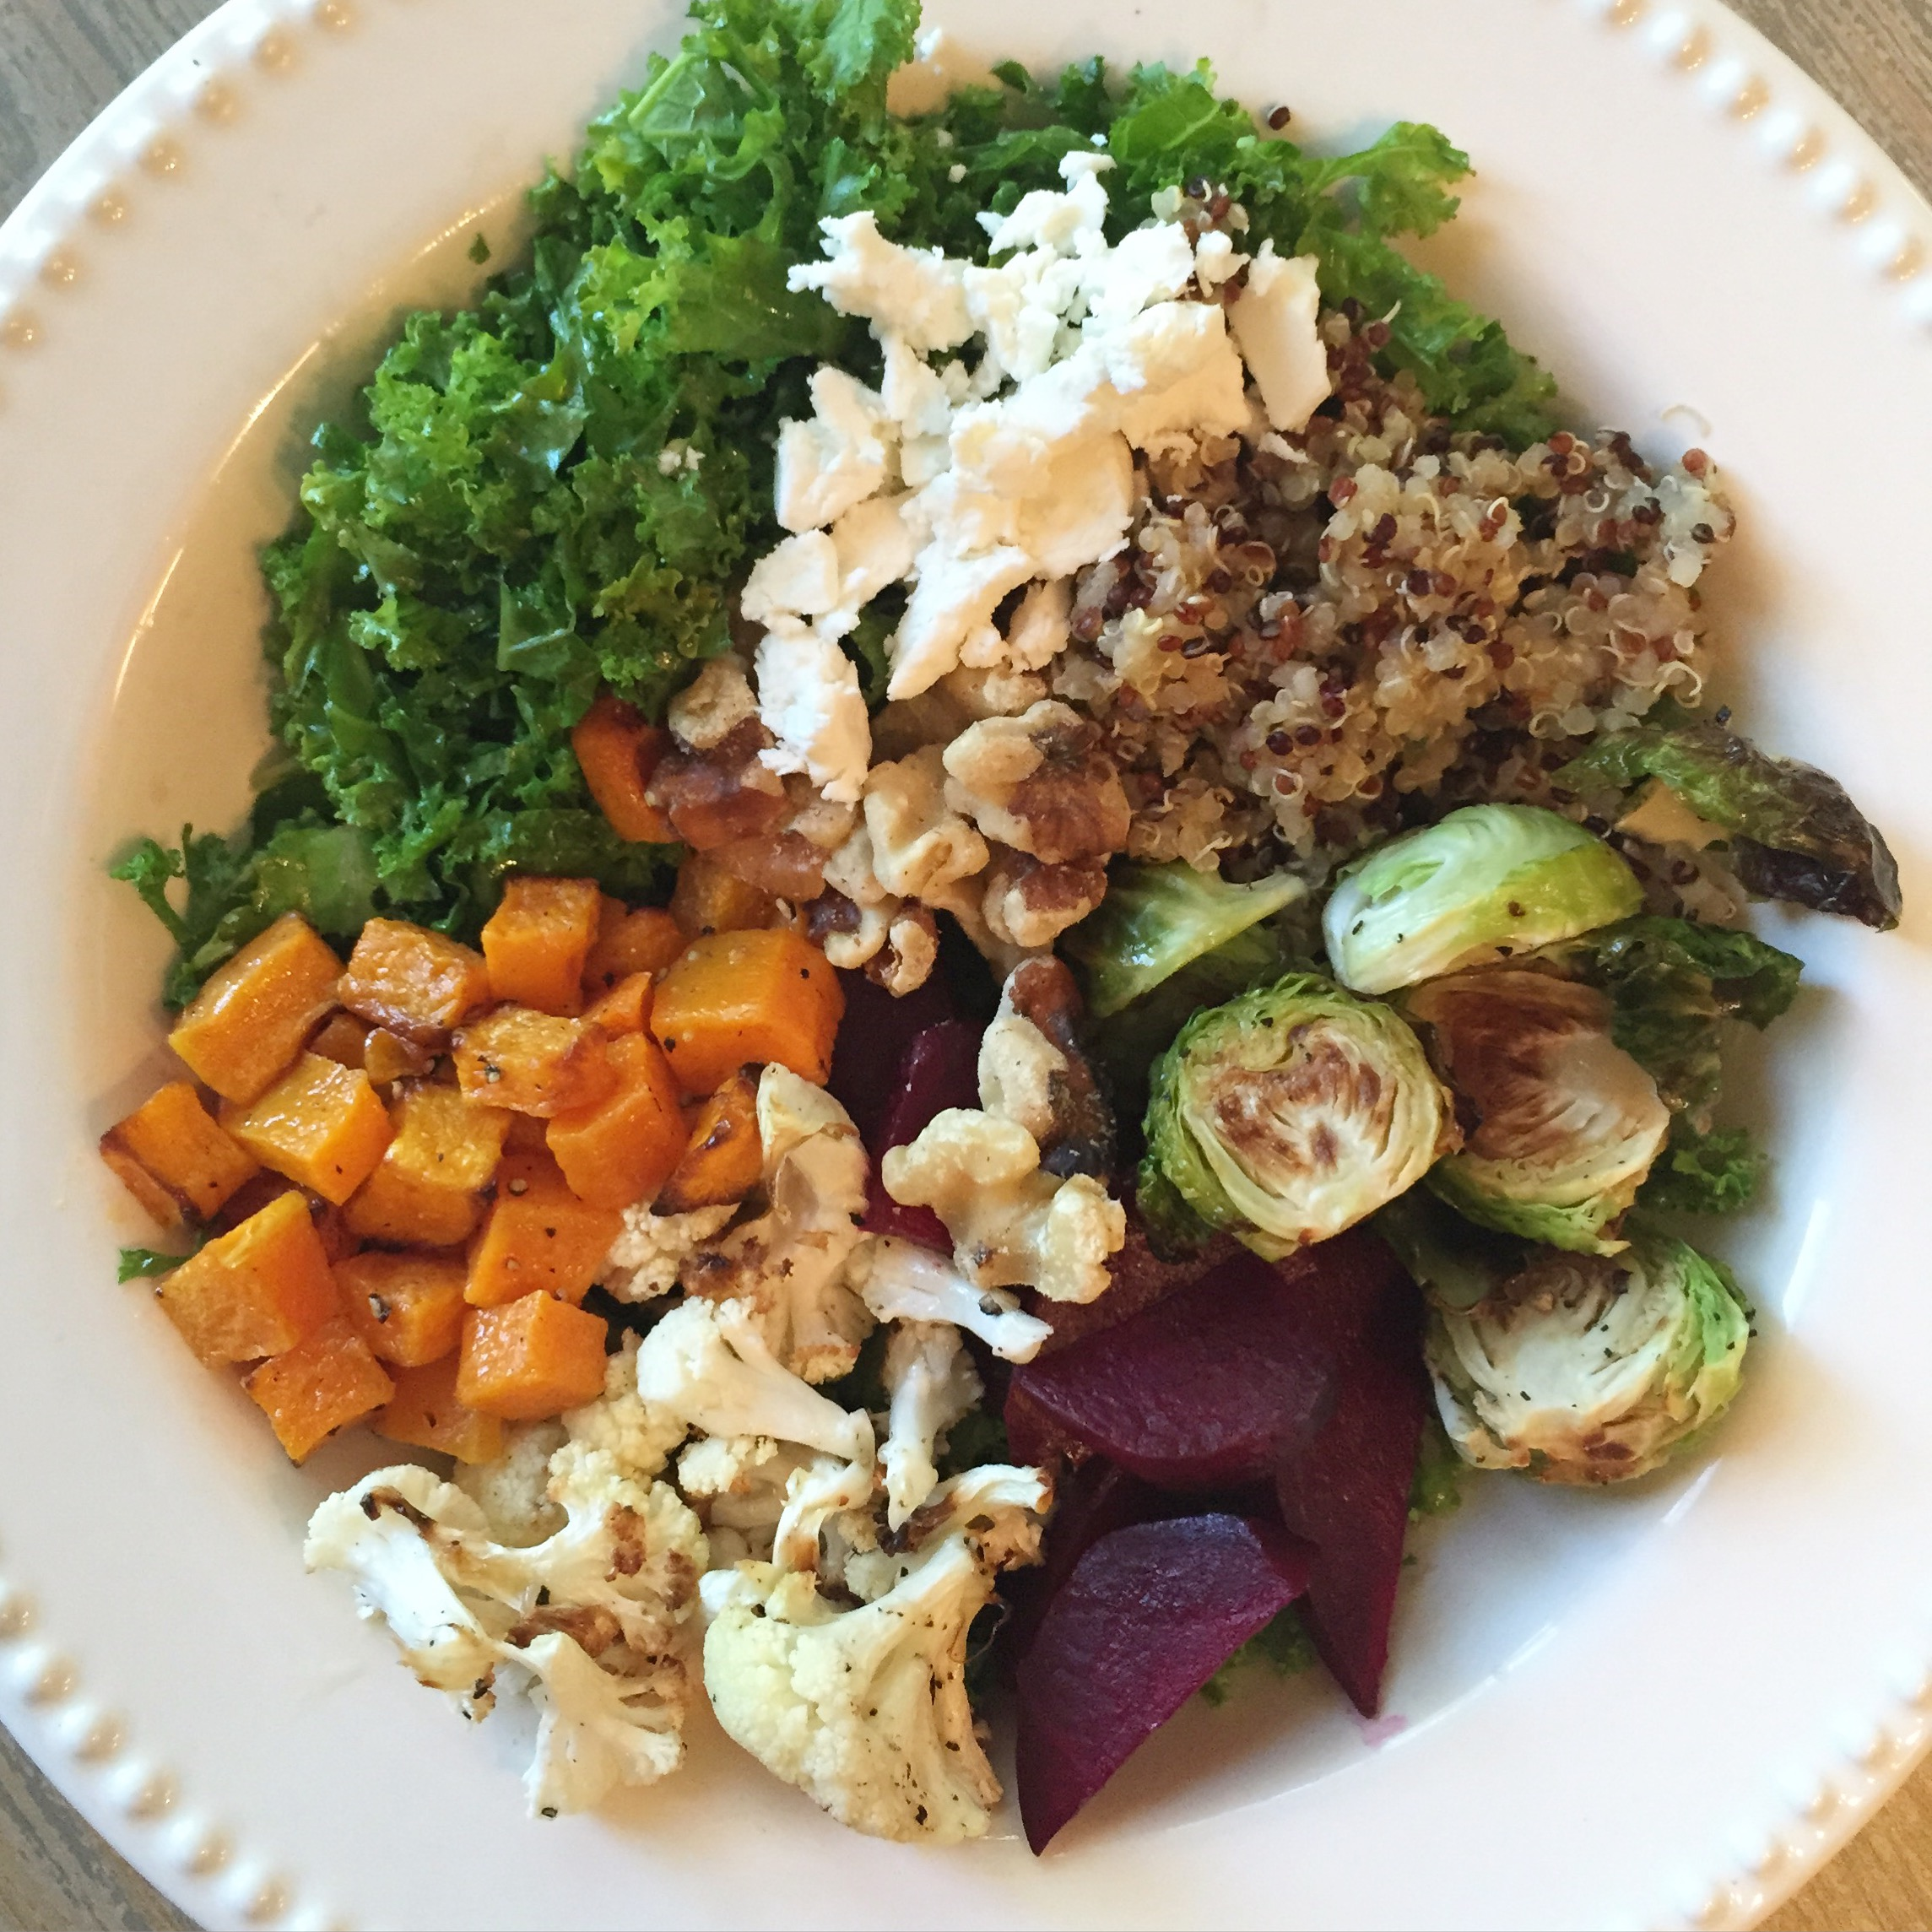 clean eating fall vegetable salad; kale, beets, brussels sprouts, cauliflower, sweet potato, goat cheese salad